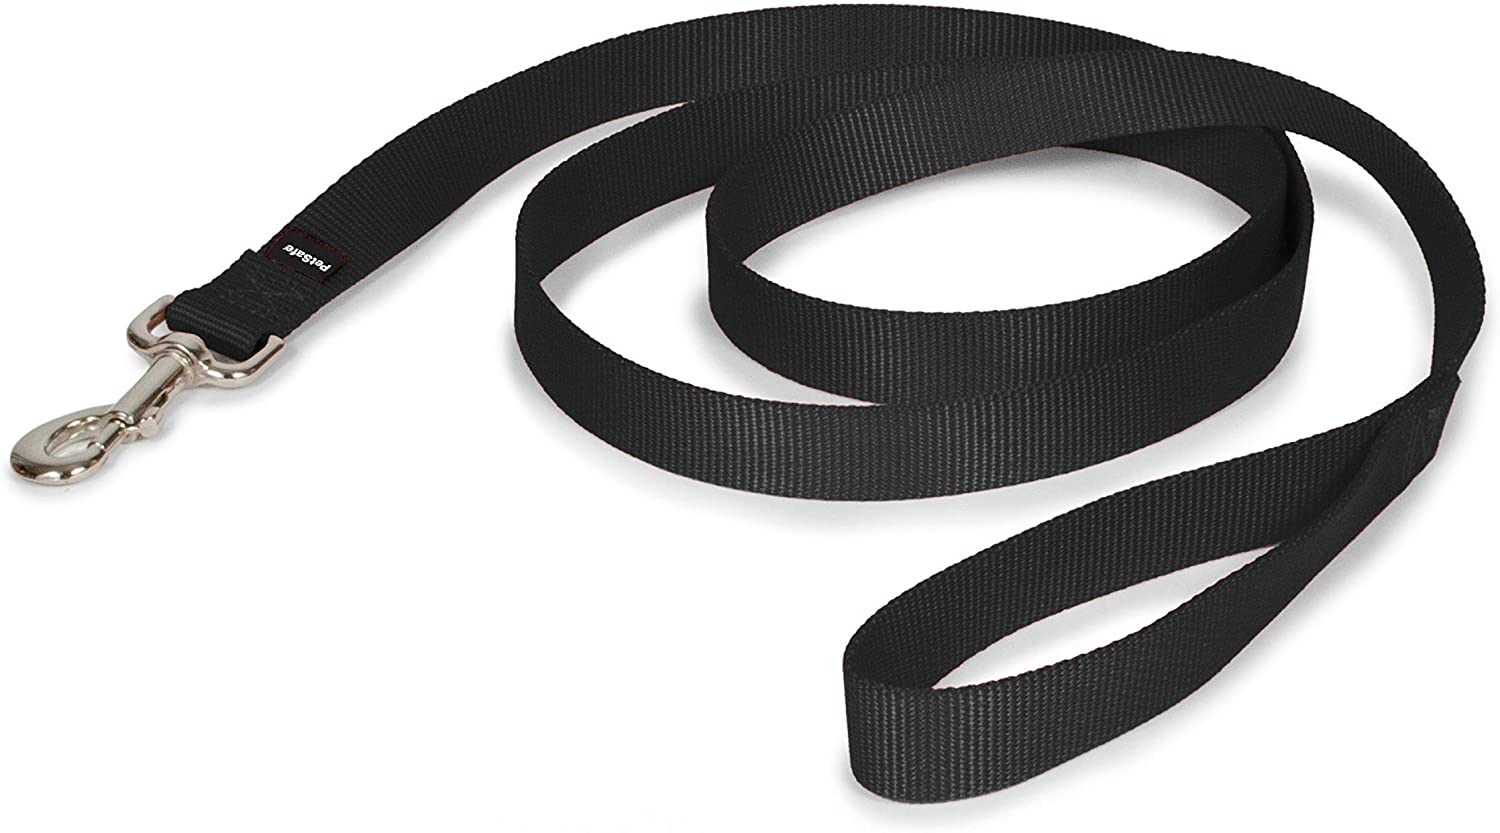 """PetSafe Nylon Dog Leash - Strong, Durable, Traditional Style Leash with Easy to Use Bolt Snap - 1"""" x 6', Black : Pet Leashes : Pet Supplies"""